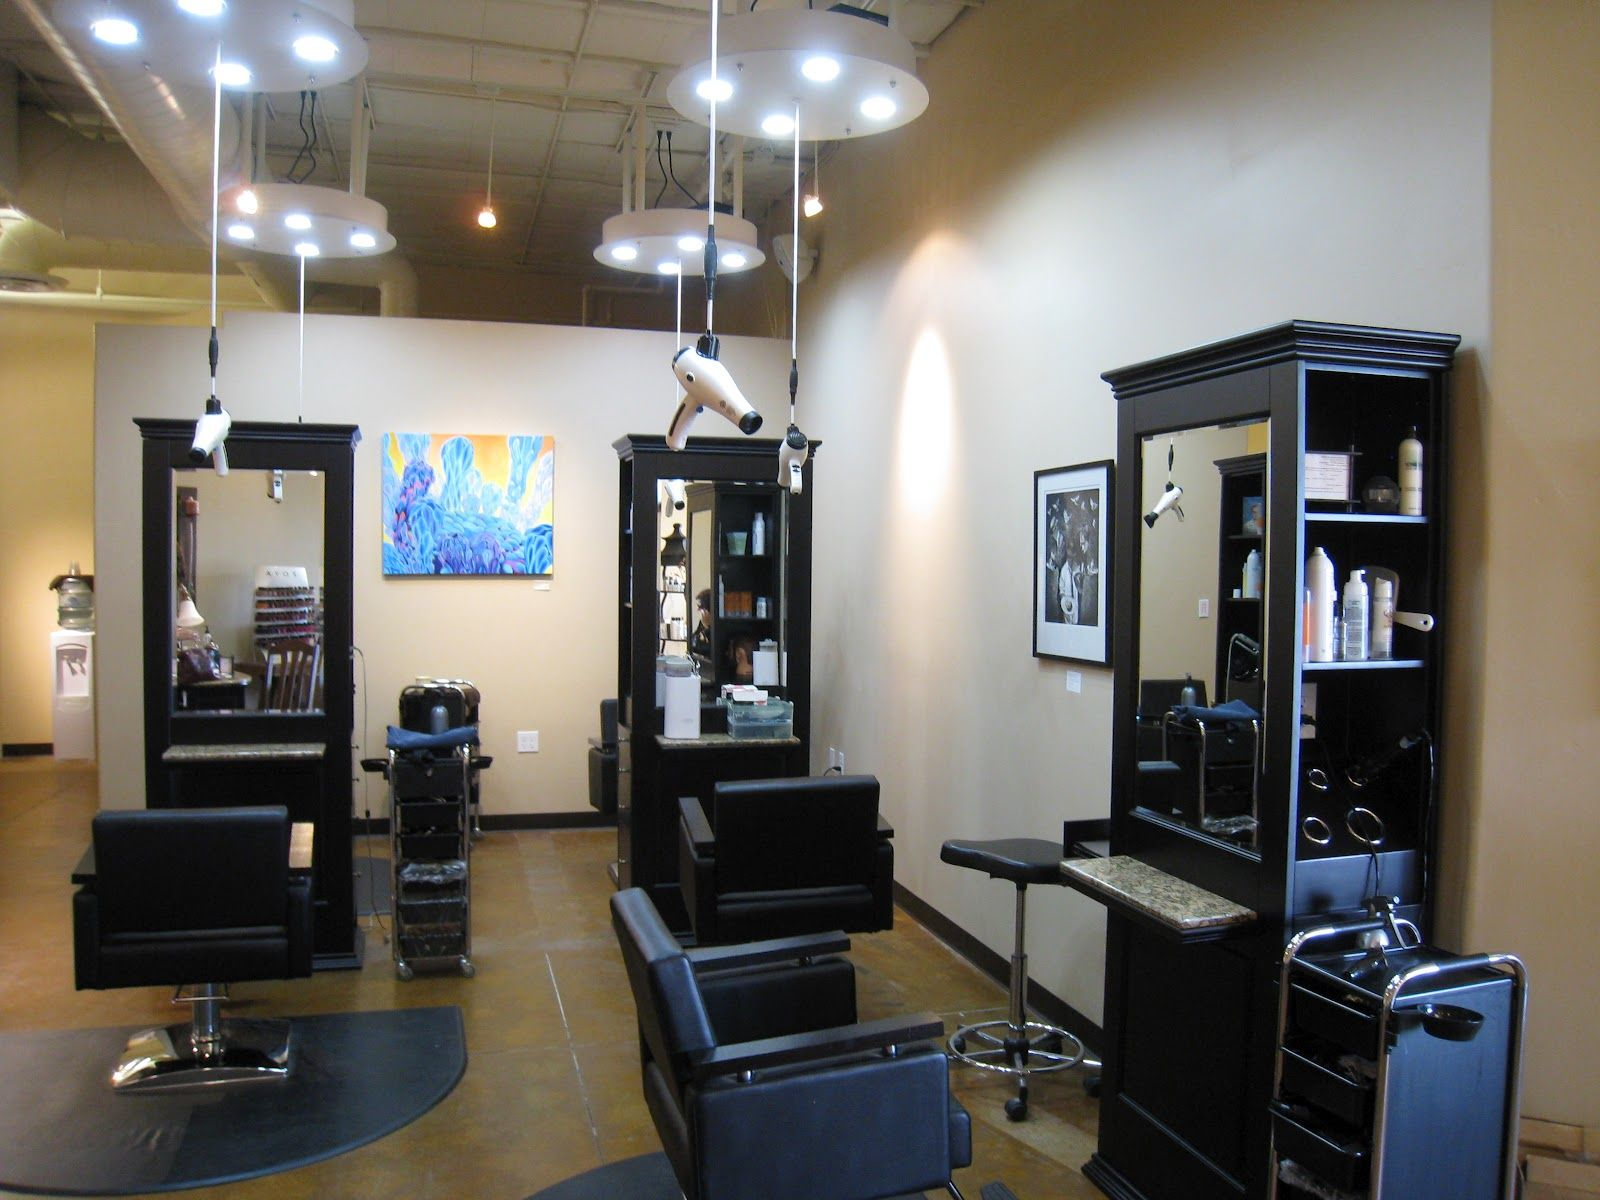 Beauty Salon Design Ideas barber shop interior pictures hair salon interior design ideas beauty parlor interior design spa salon design ideas hair salon layouts modern salon ideas Beauty Salon Interior Design Pictures Photo Image